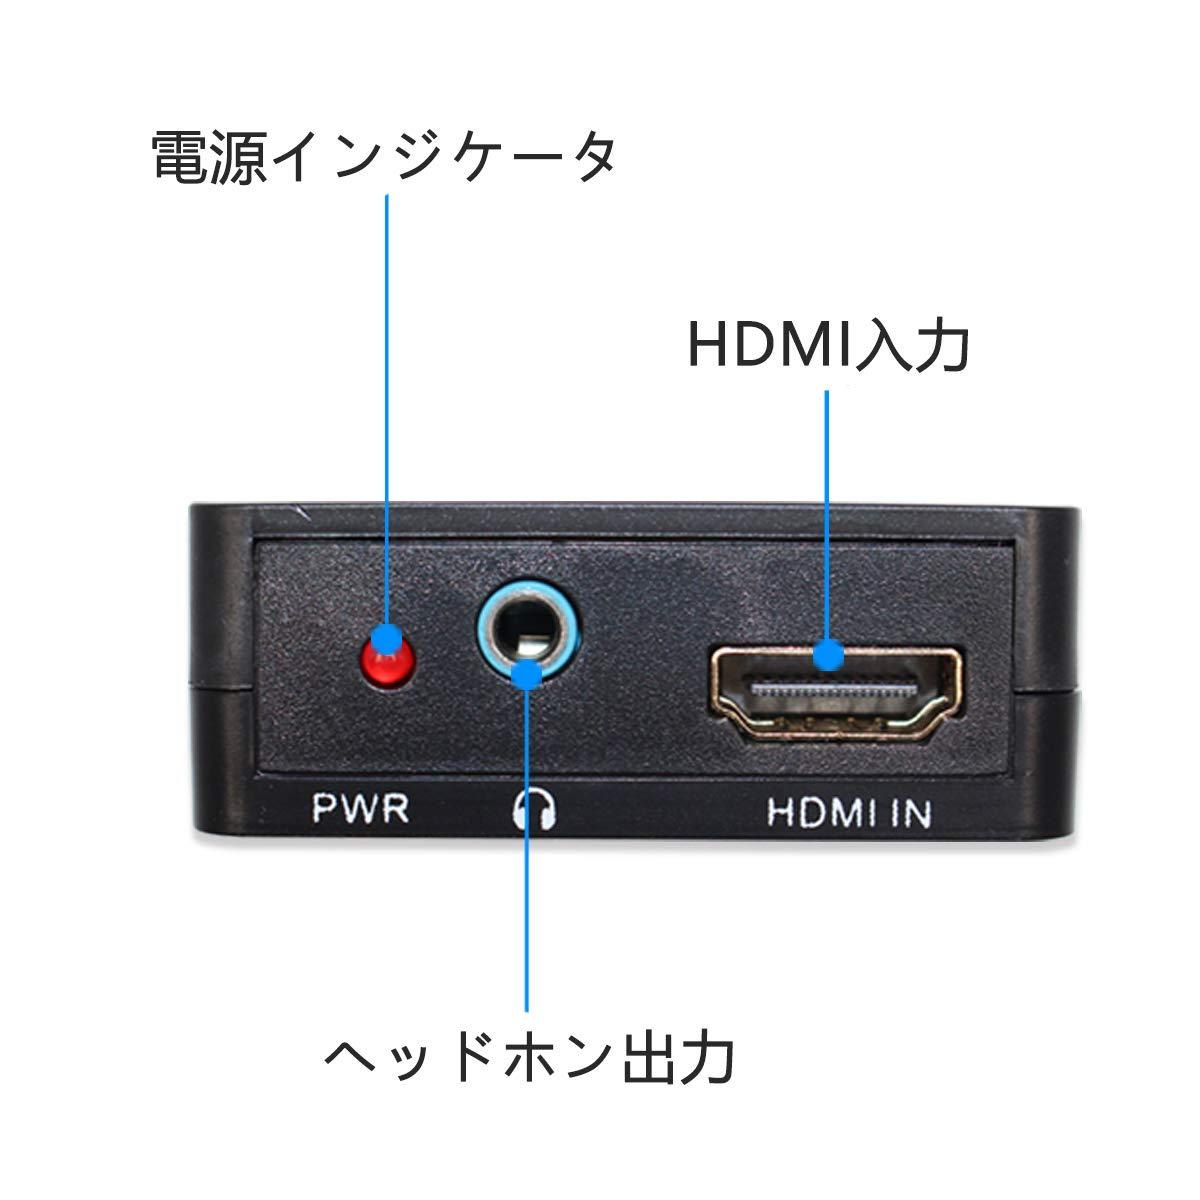 Optical Digital Coaxial Stereo Audio Extractor Converter Splitter HDMI to HDMI